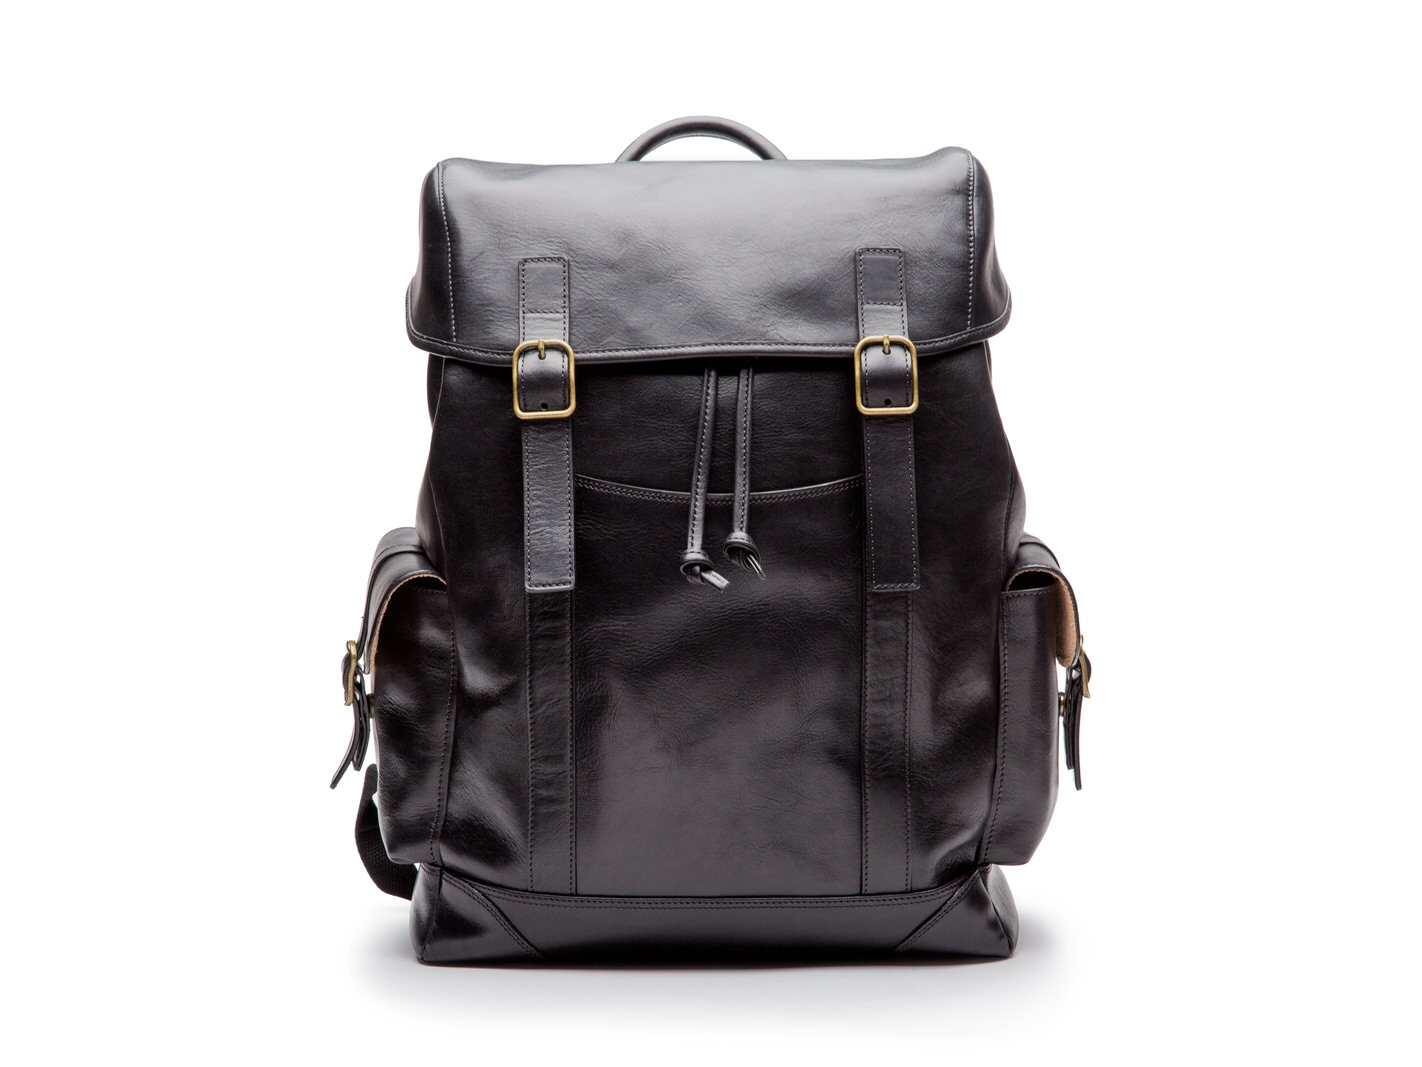 Pathfinder All Leather Backpack-219 Black - 219 Black